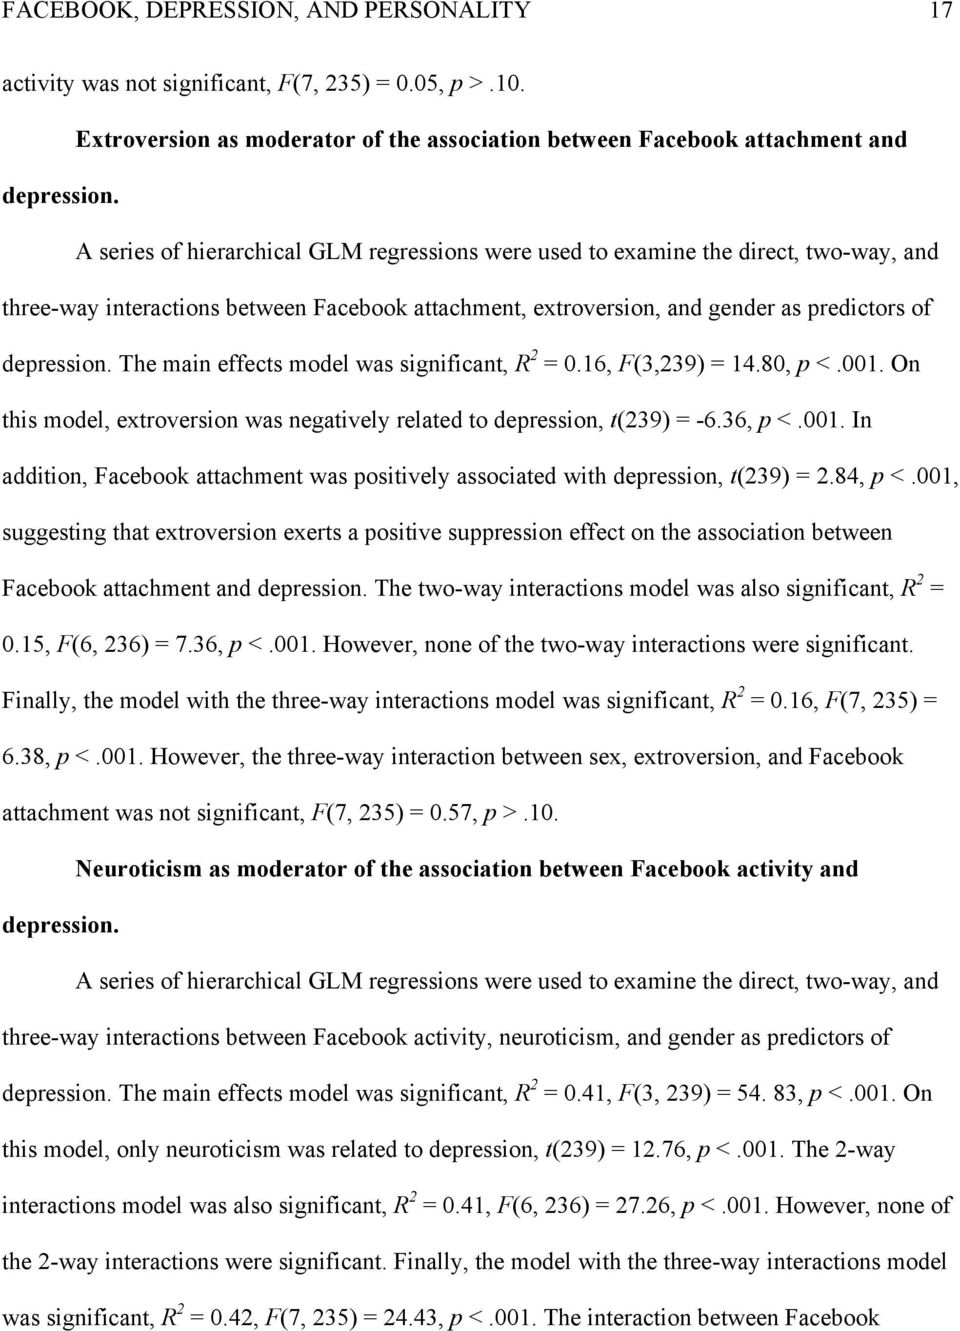 The main effects model was significant, R 2 = 0.16, F(3,239) = 14.80, p <.001. On this model, extroversion was negatively related to depression, t(239) = -6.36, p <.001. In addition, Facebook attachment was positively associated with depression, t(239) = 2.